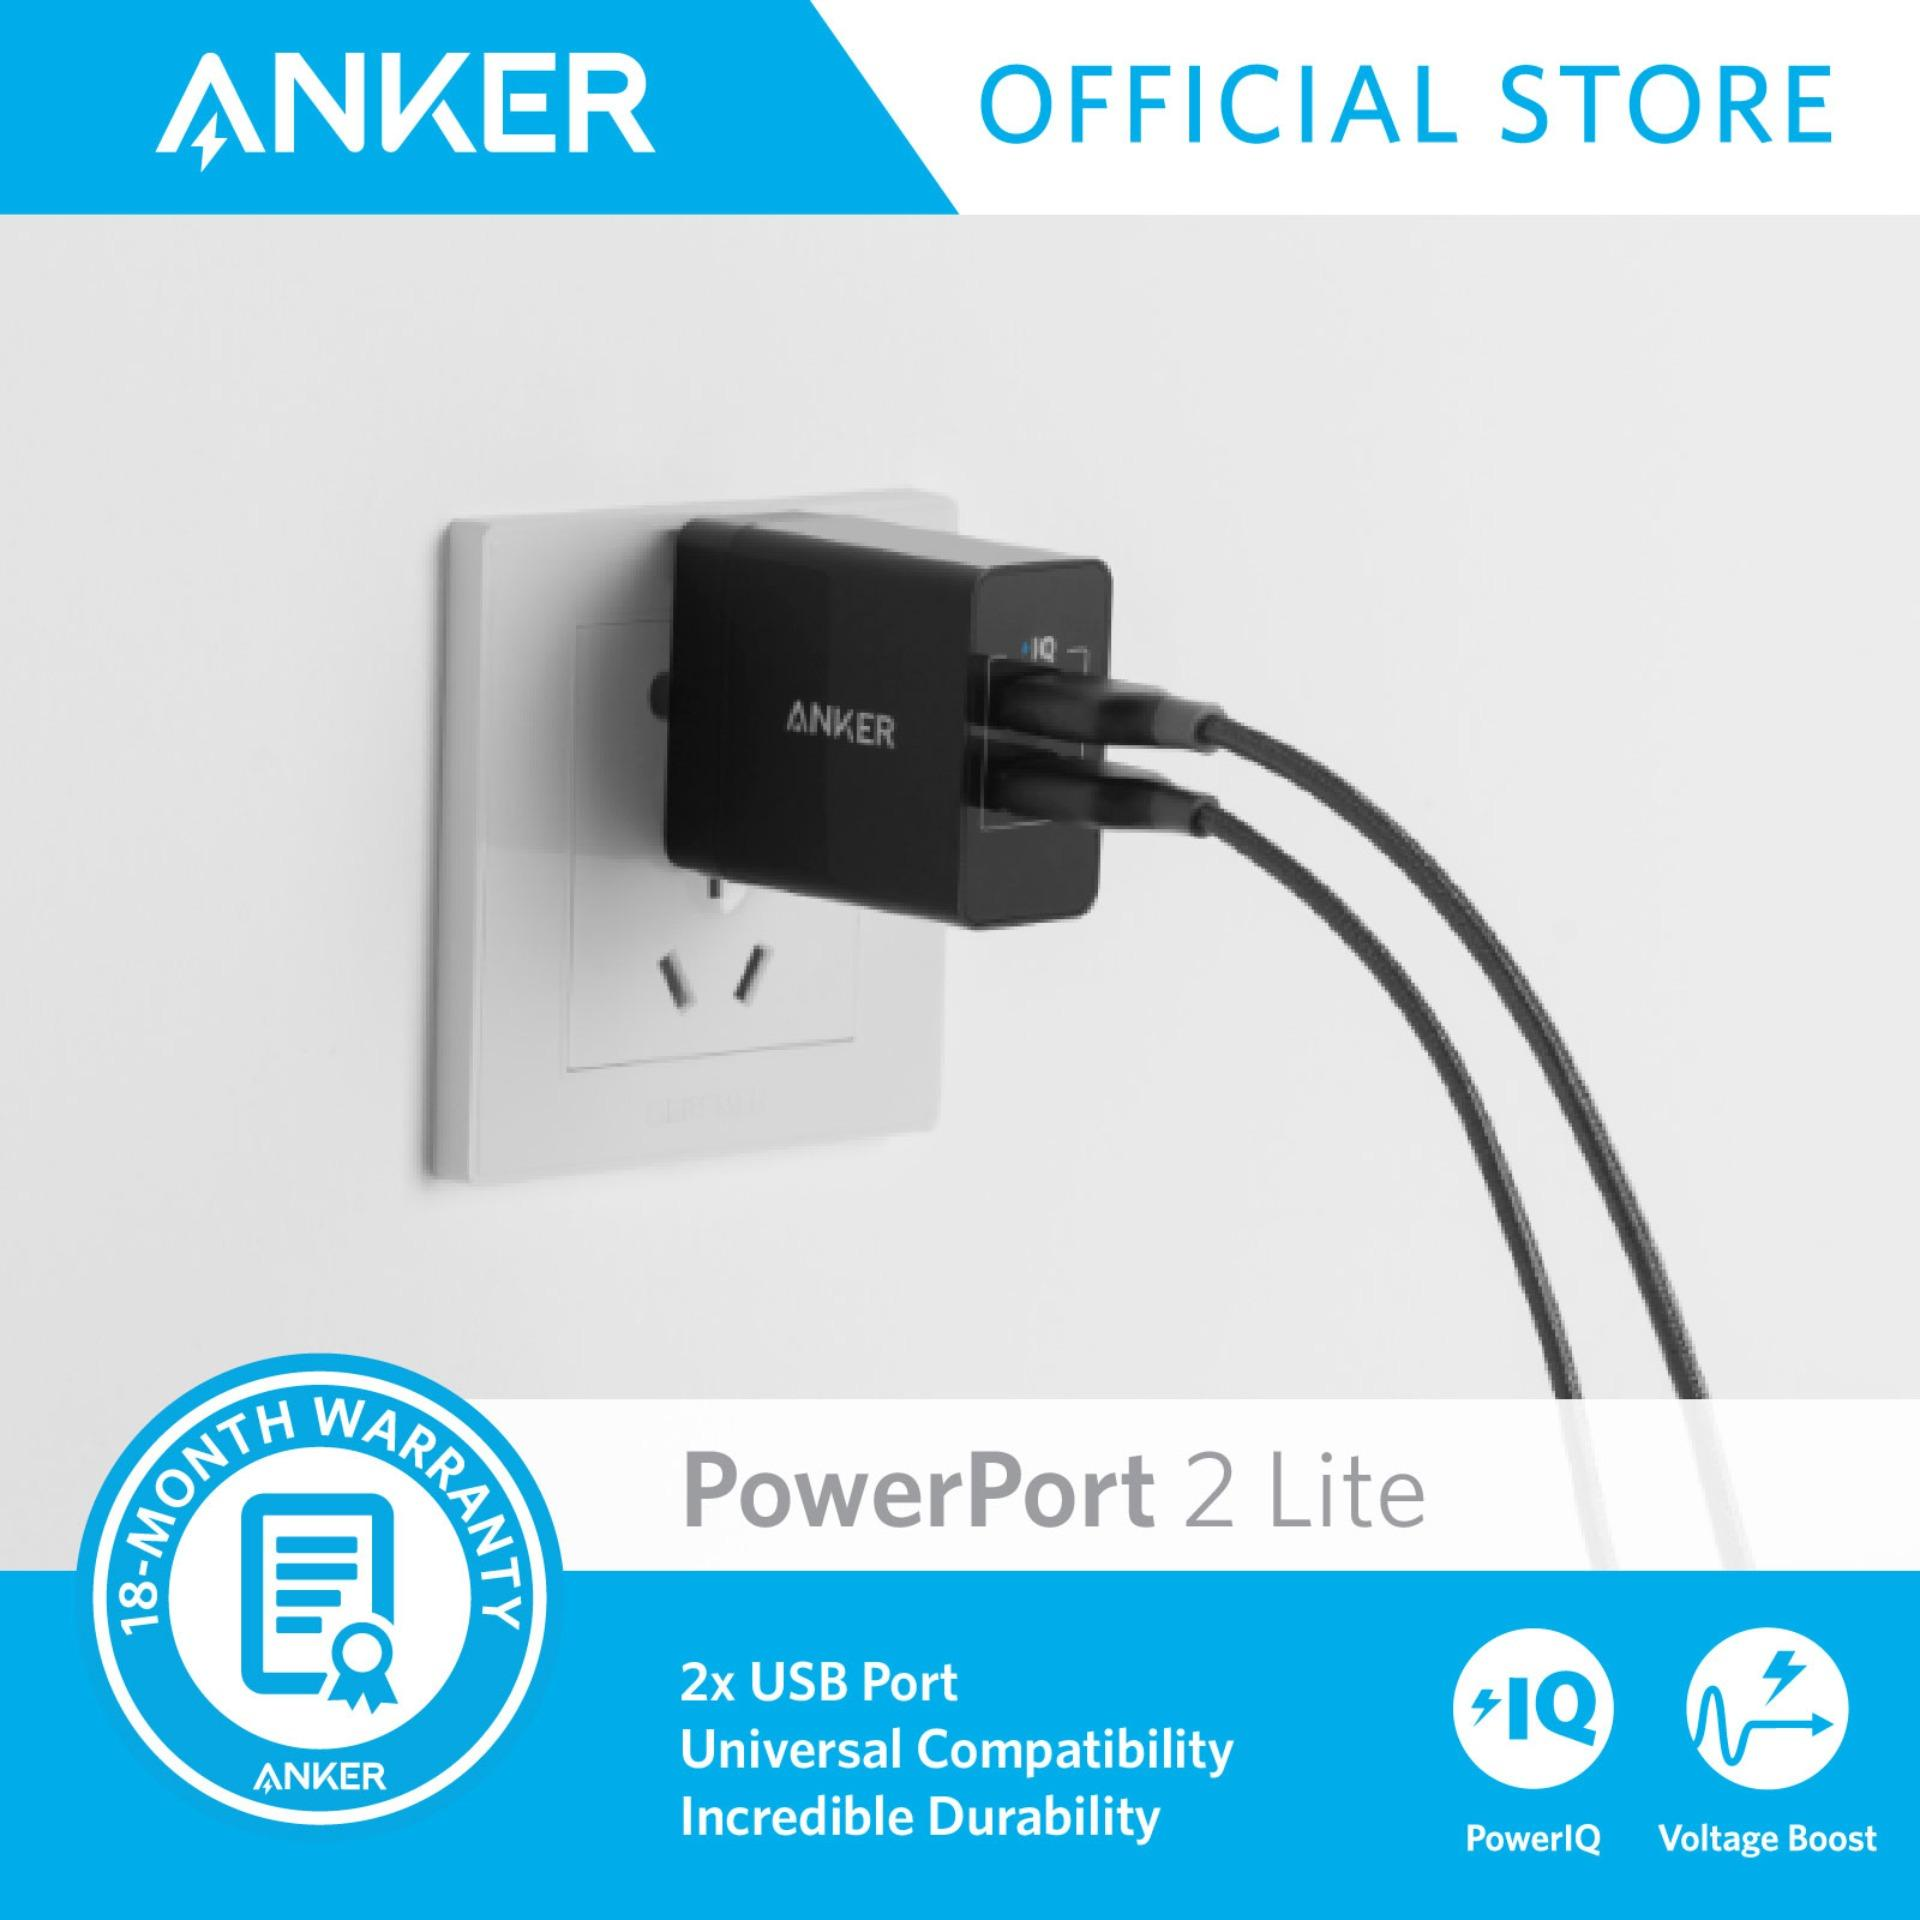 Anker PowerPort 2 lite: 12W 2-Port Wall Charger with PowerIQ and Voltage Boost